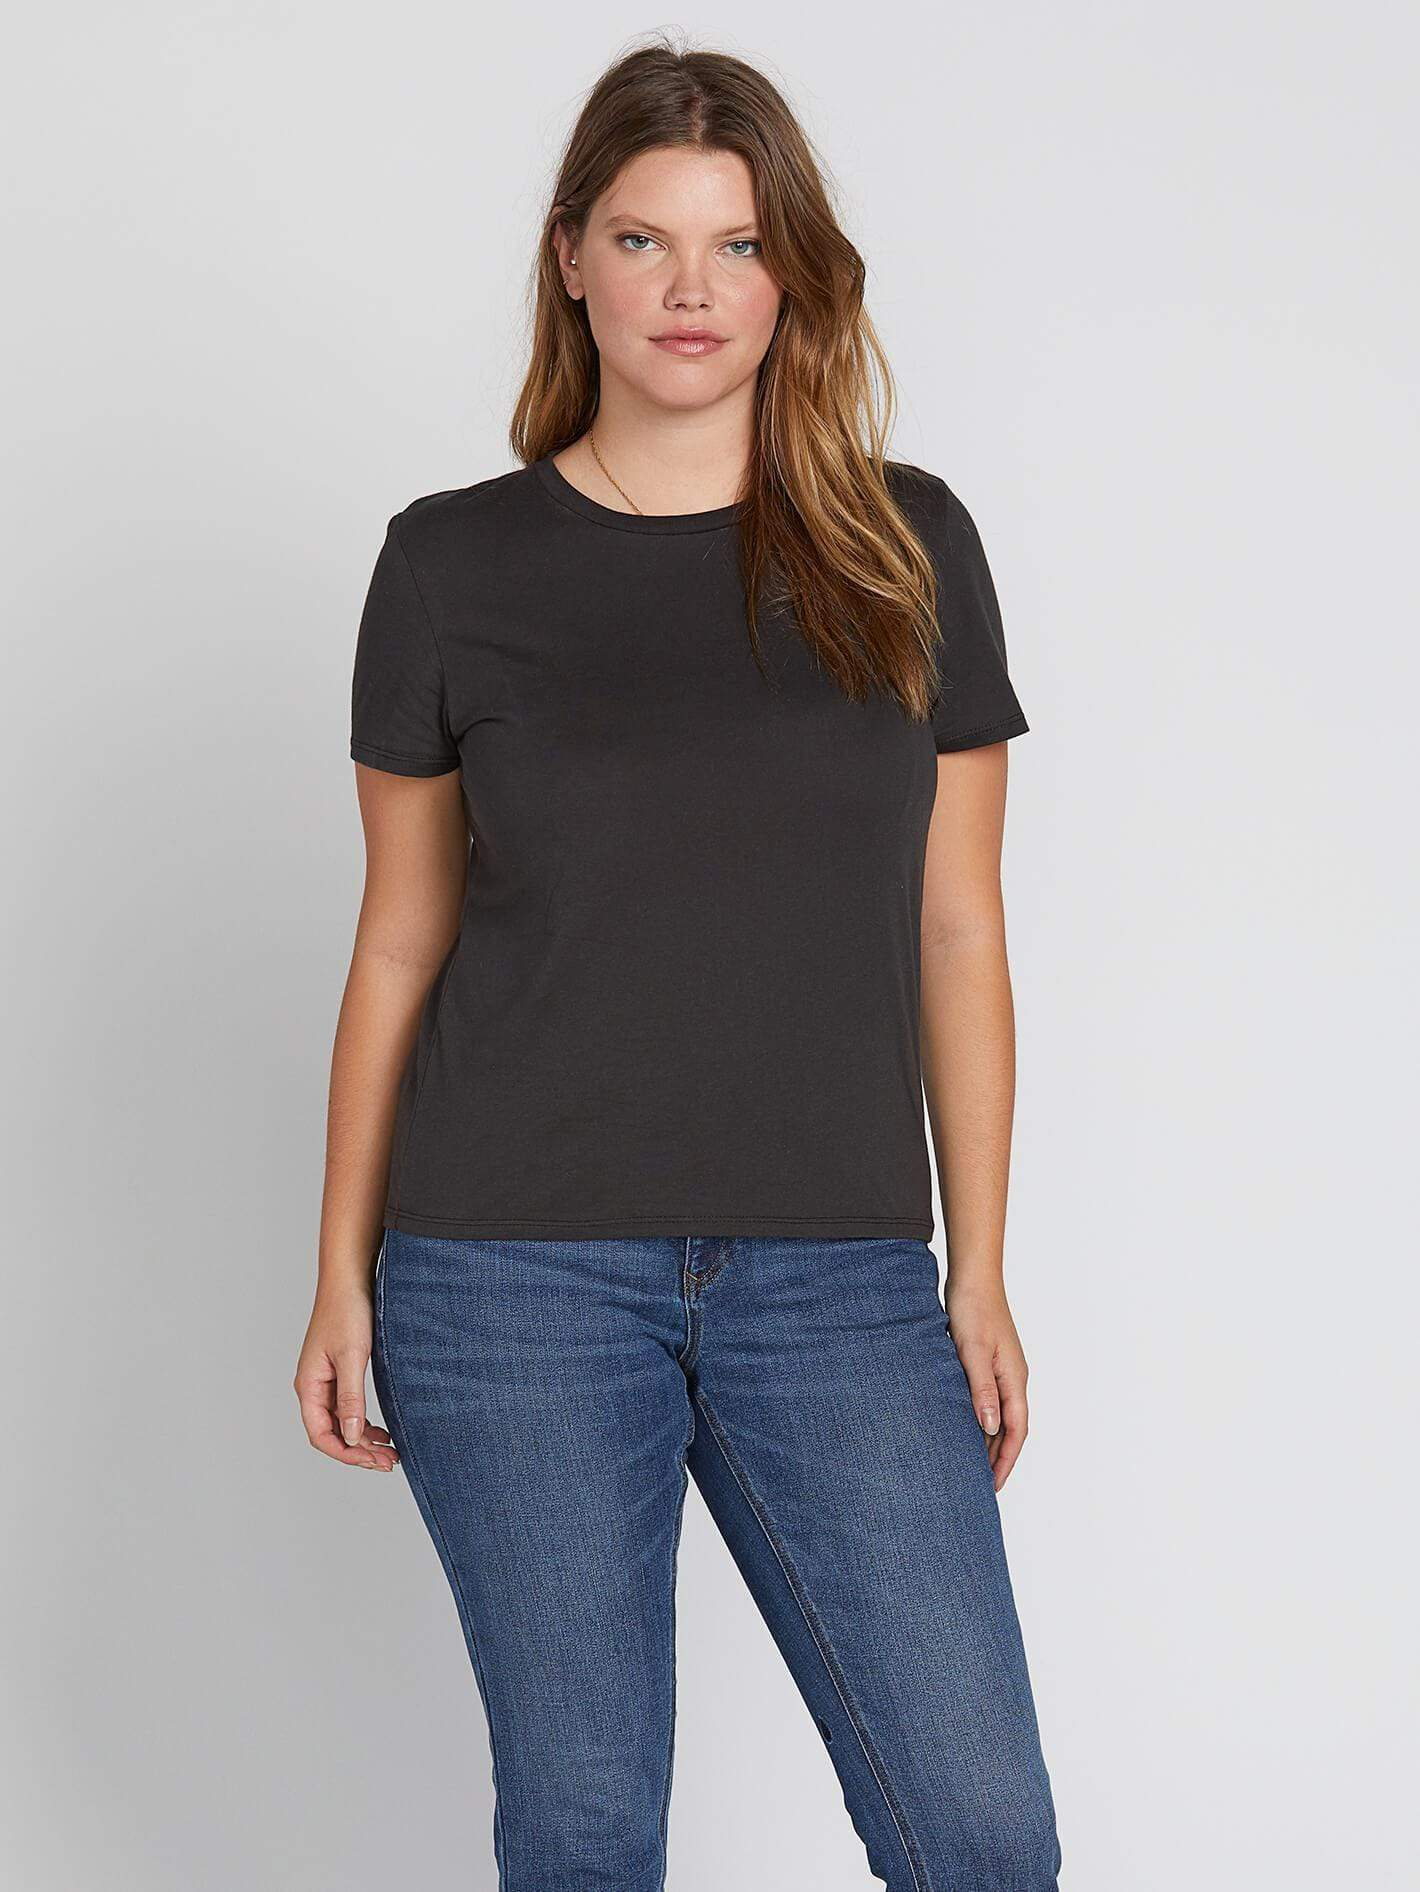 volcom one of each tee shirt in black top size 12w